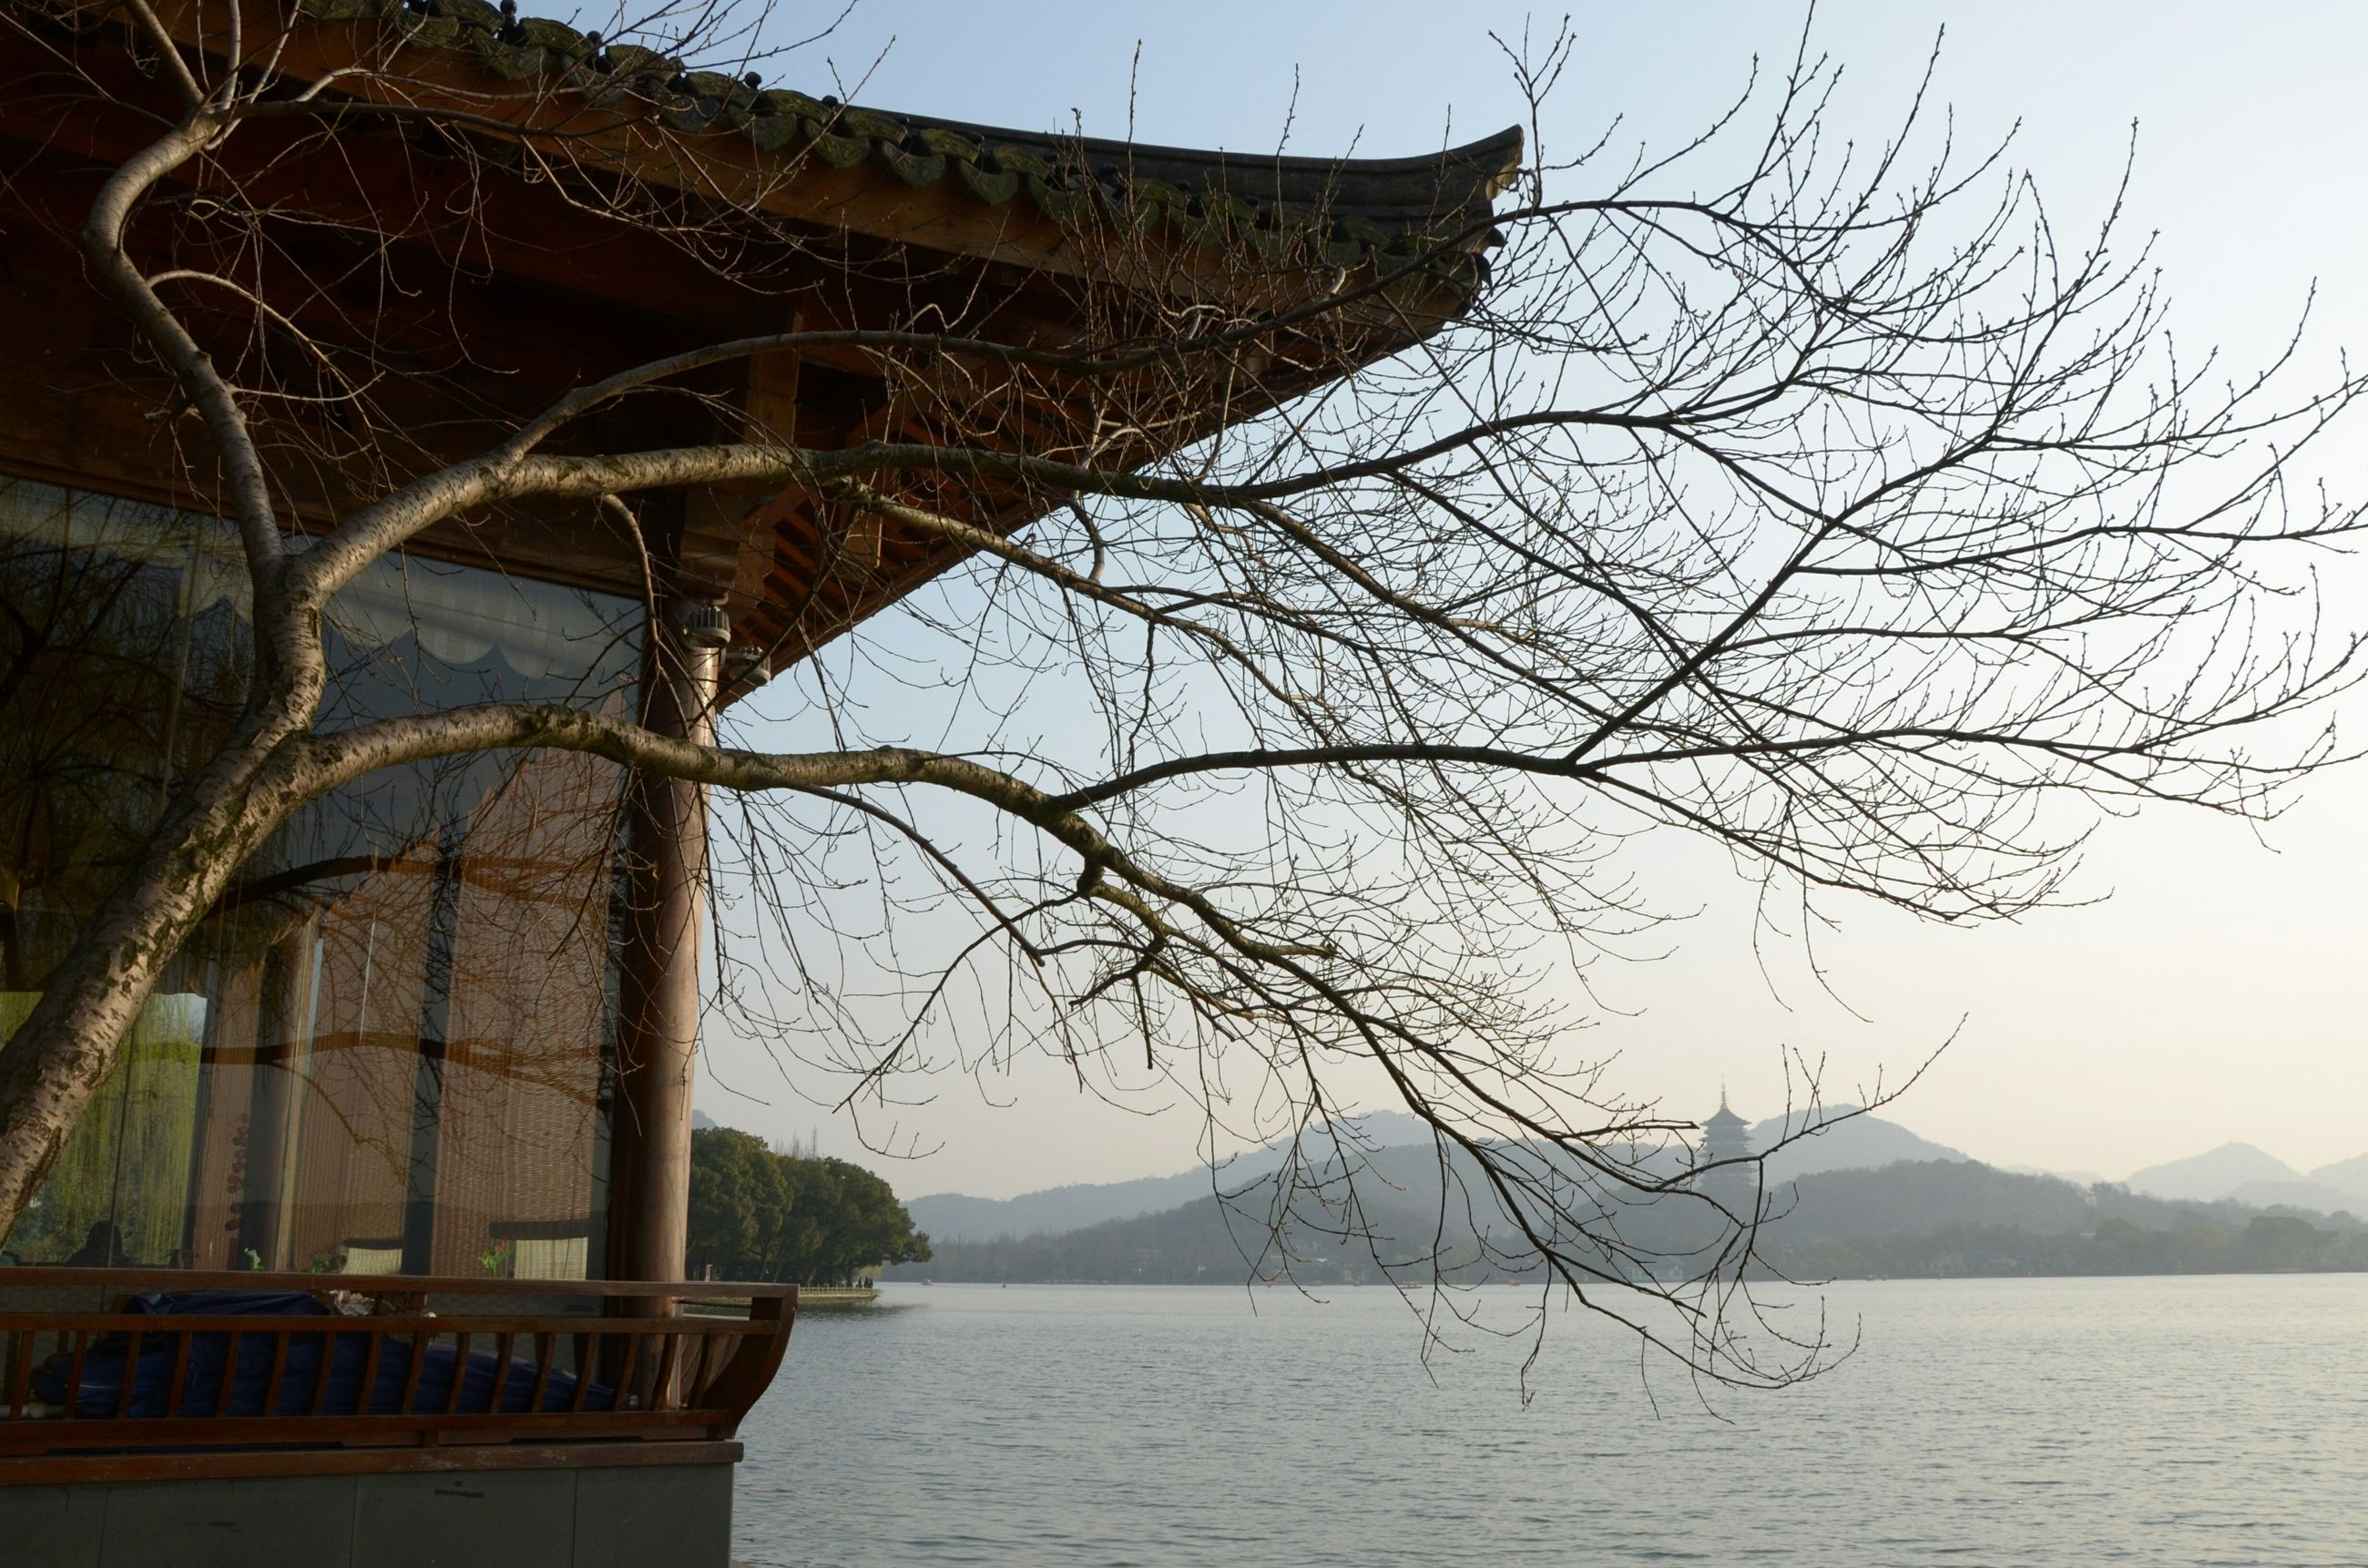 water, built structure, architecture, bare tree, waterfront, river, building exterior, sky, lake, tree, nature, bridge - man made structure, mountain, branch, connection, tranquility, clear sky, day, outdoors, tranquil scene